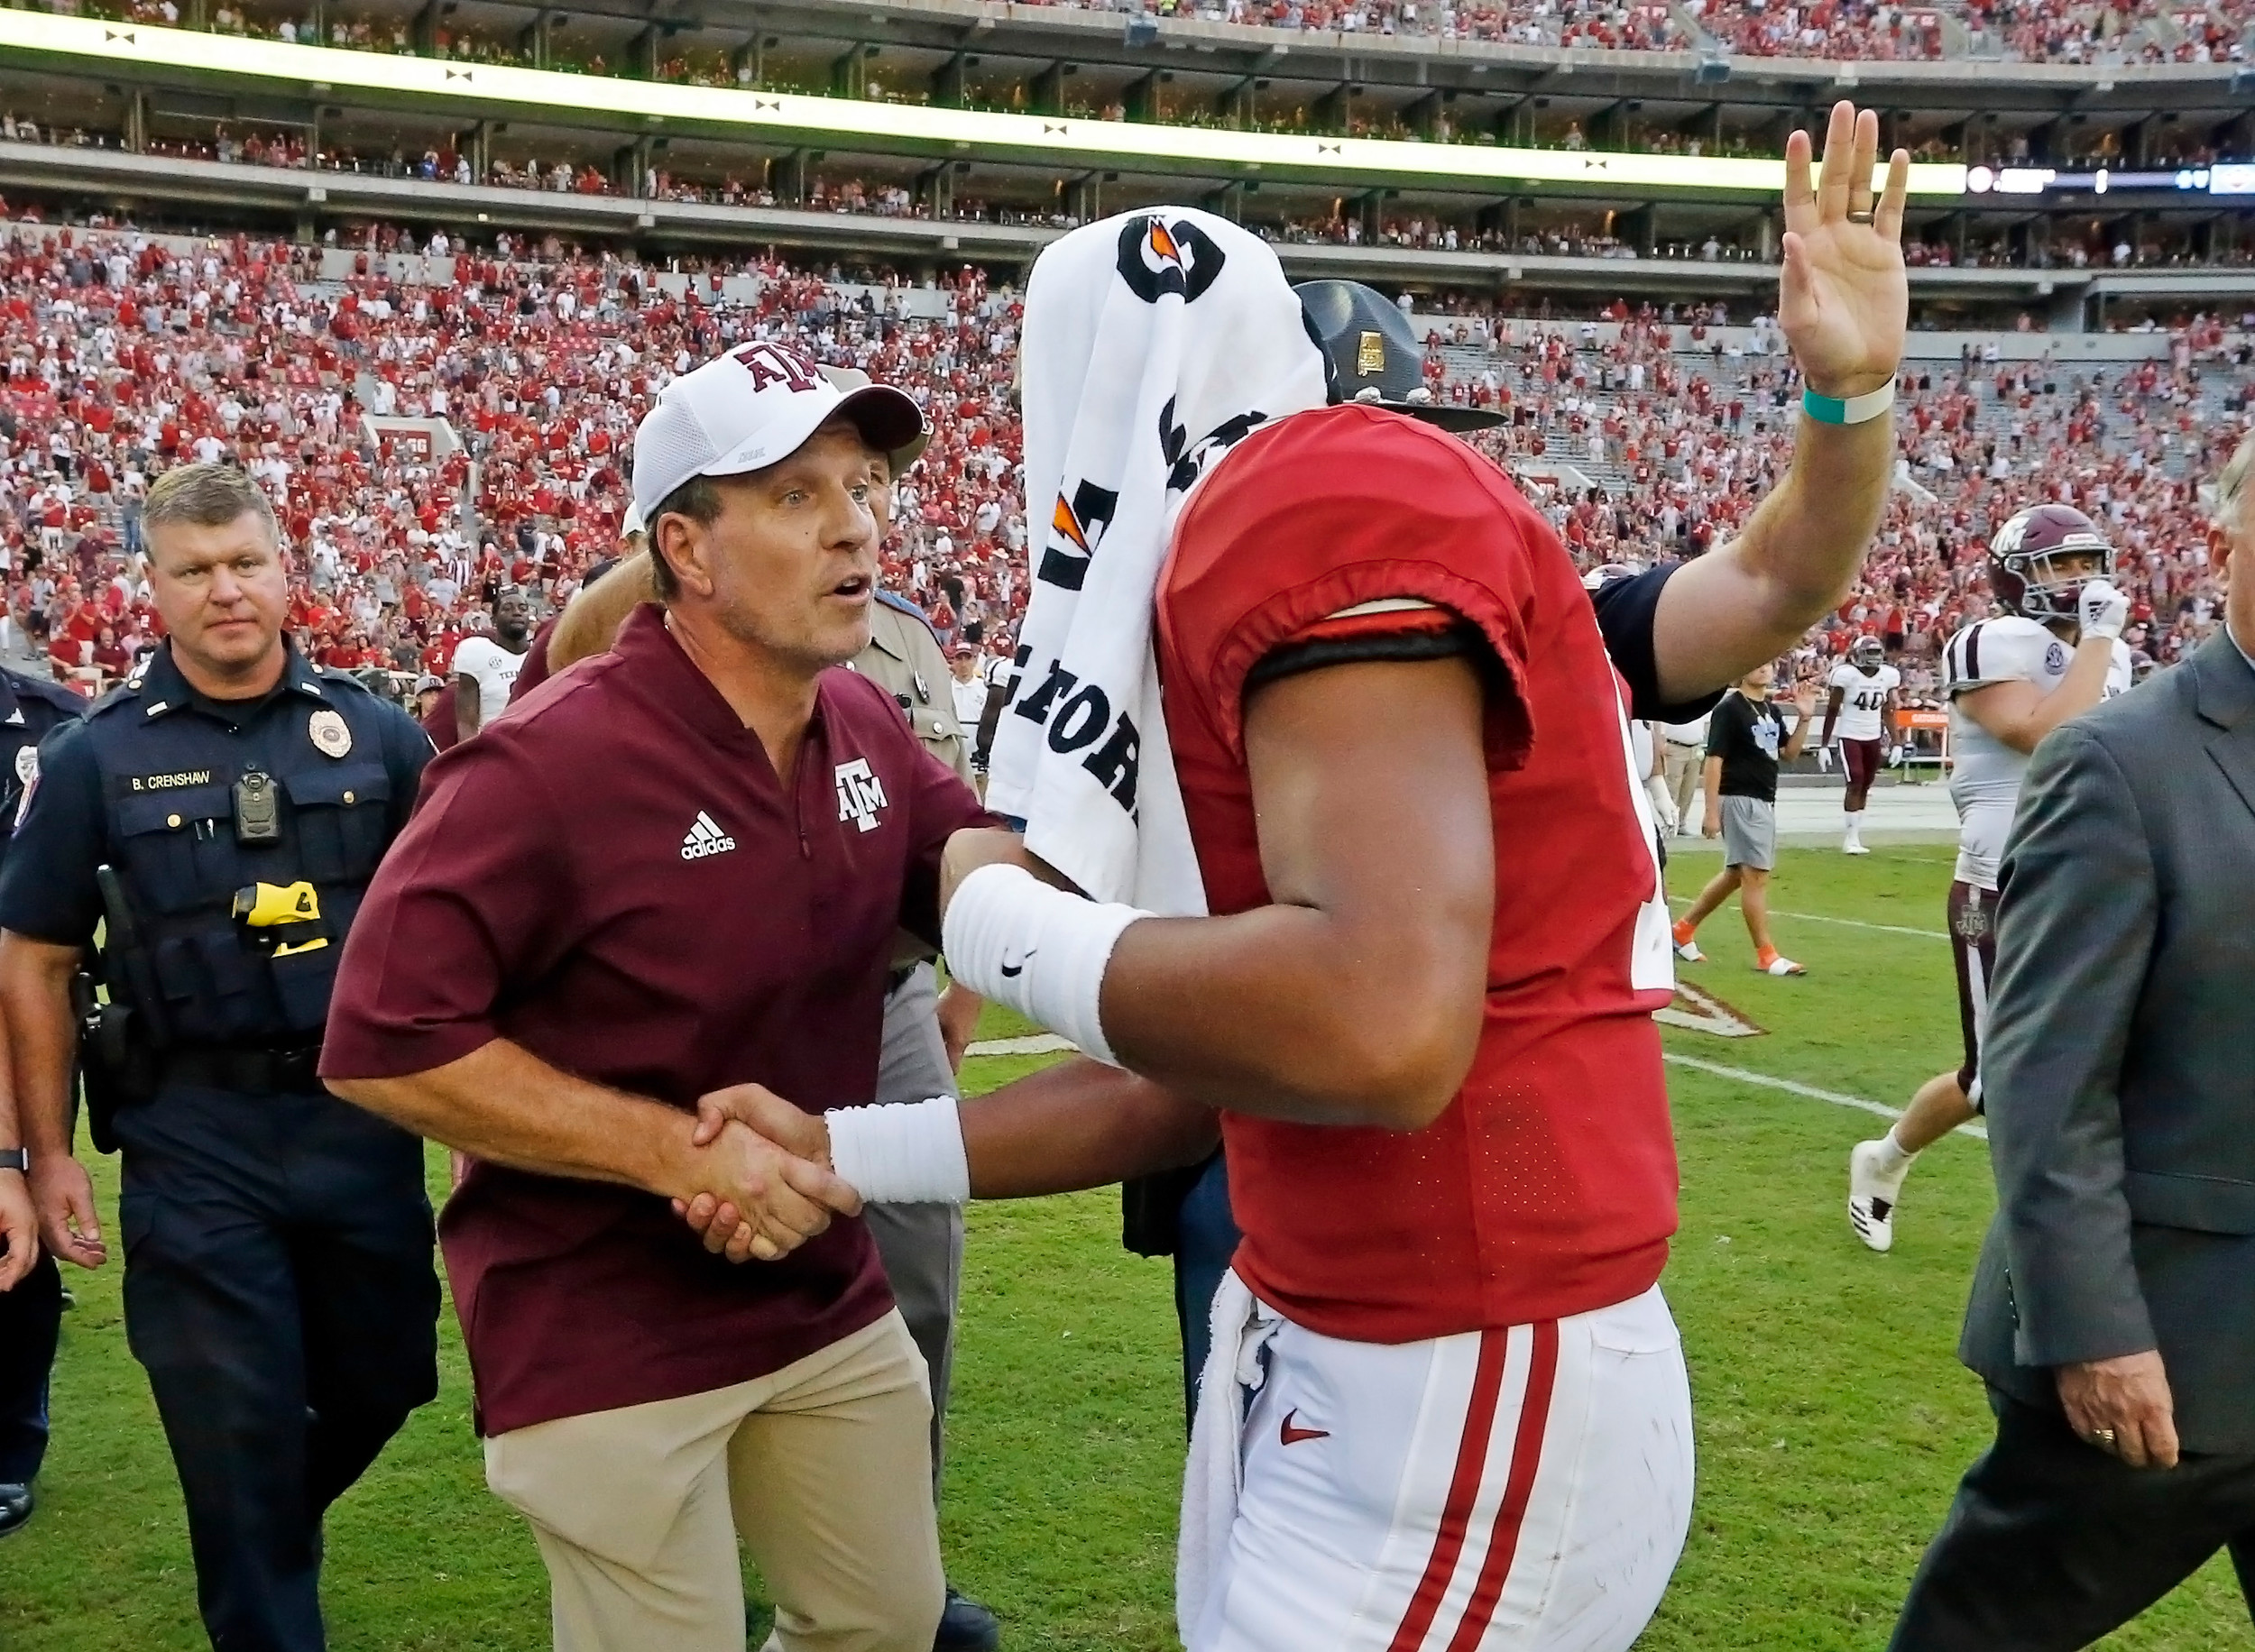 Alabama Crimson Tide quarterback Tua Tagovailoa speaks with Texas A&M Aggies head coach Jimbo Fisher after the game with against the Texas A&M Aggies at Bryant-Denny Stadium.  Jason Clark / Daily Mountain Eagle